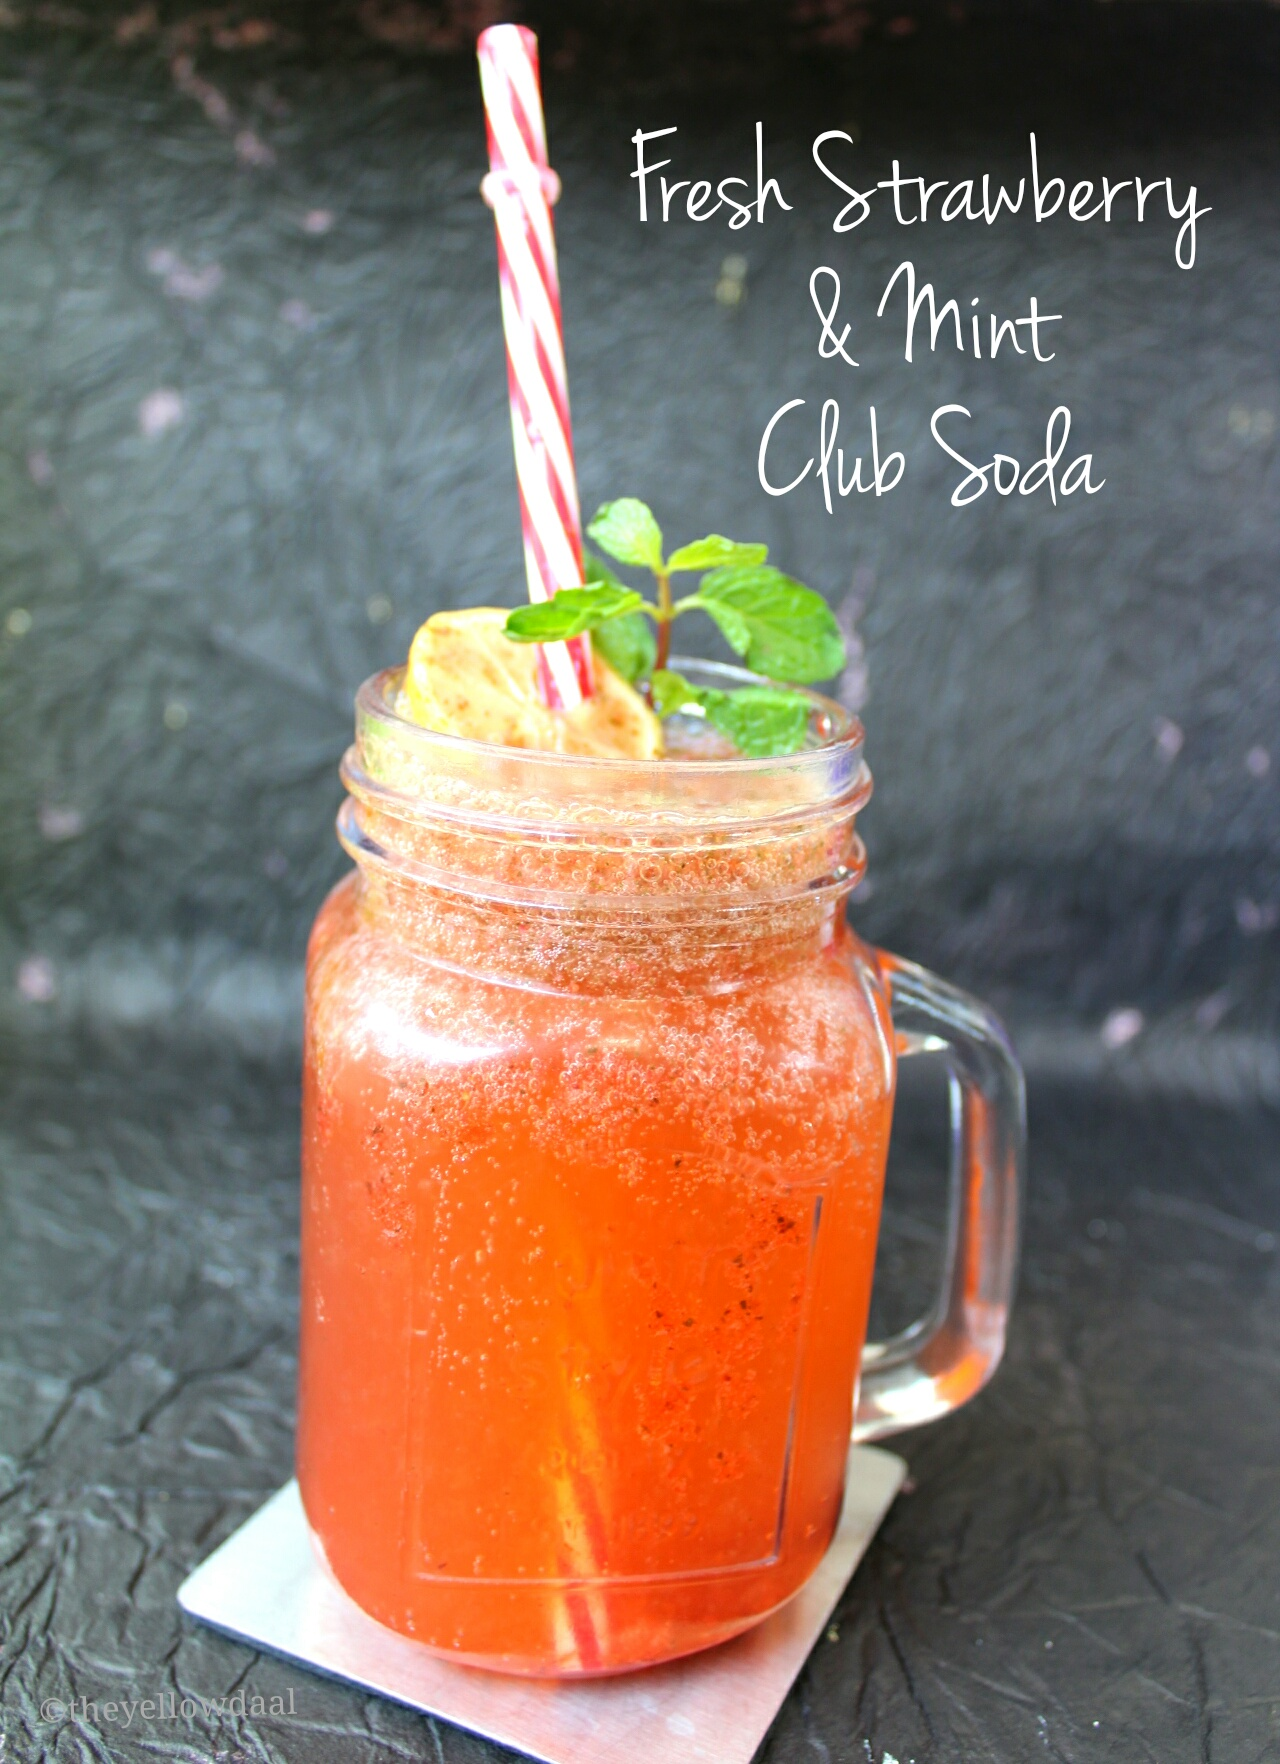 Fresh-Strawberry-Mint-Club Soda